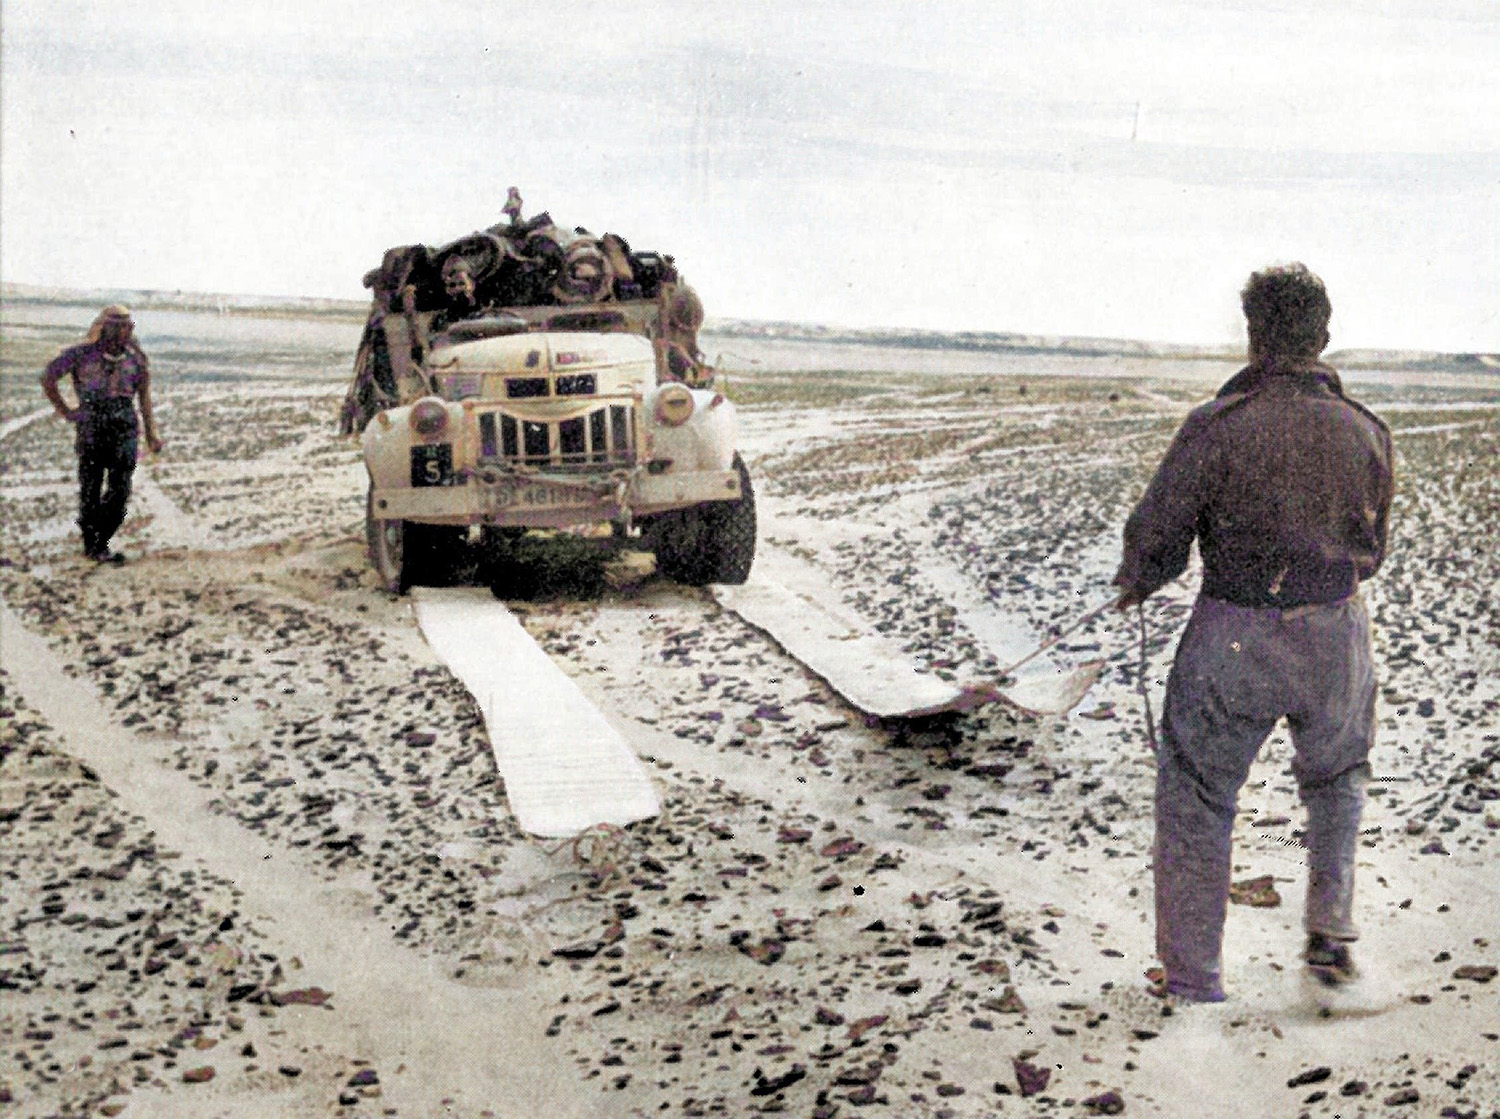 Heavily laden trucks could easily bog down in the desert. Here patrolmen use sand mats to increase the traction and drive a lorry free of the dunes